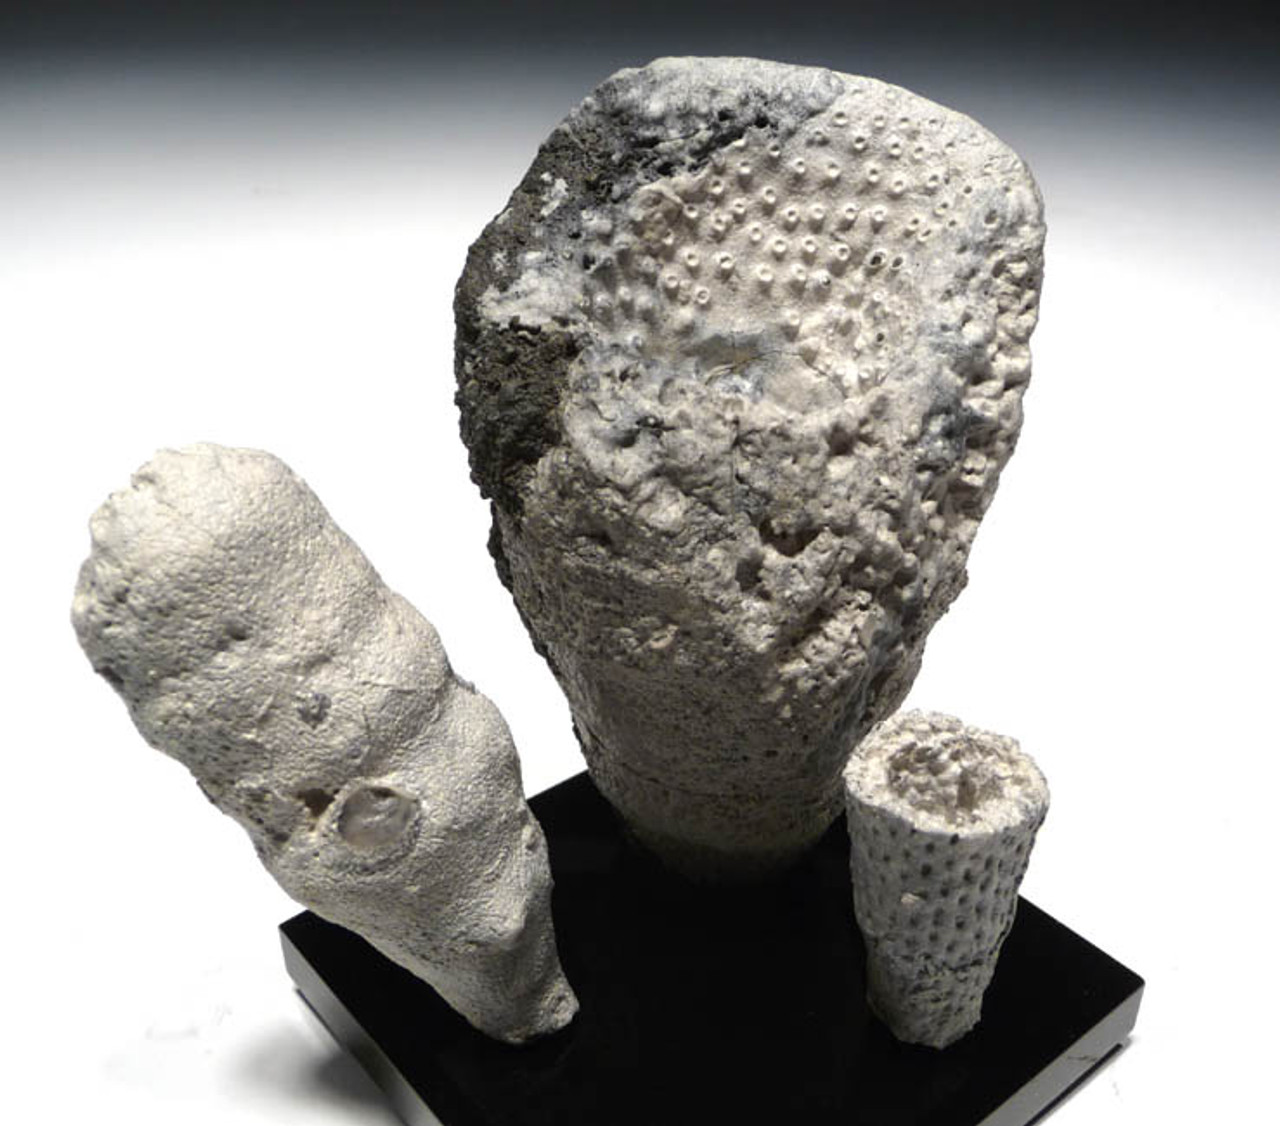 "SP012 - FOSSIL CRETACEOUS SPONGE ""REEF"" OF 3 CAMPANIAN-ERA FULLY INFLATED SEA SPONGES OF DIFFERENT SPECIES"